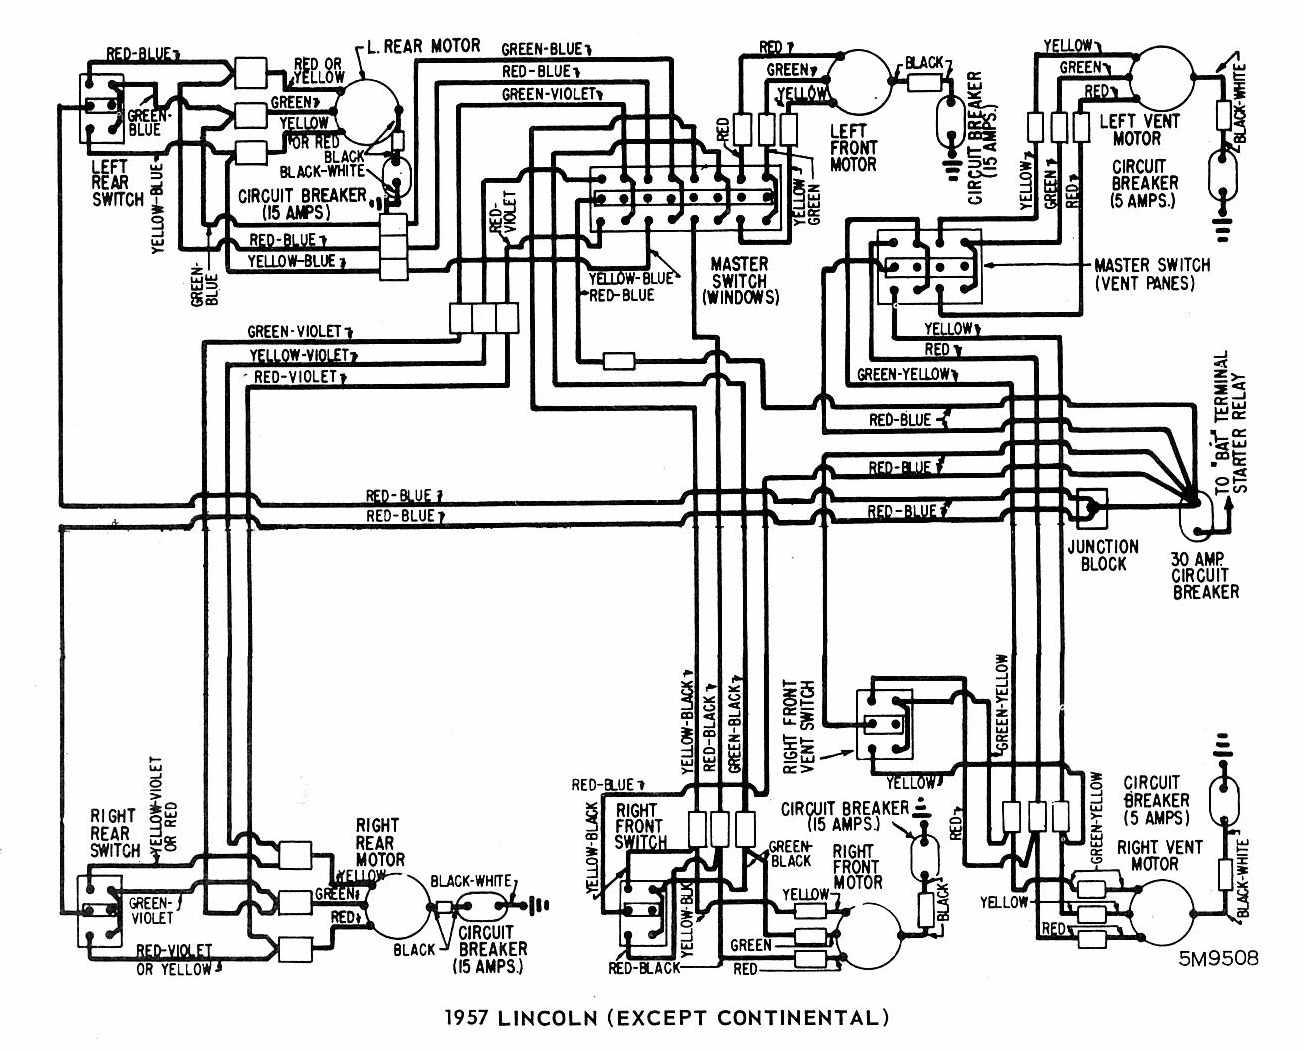 2000 continental fuel wiring diagram lincoln (except continental) 1957 windows wiring diagram ...